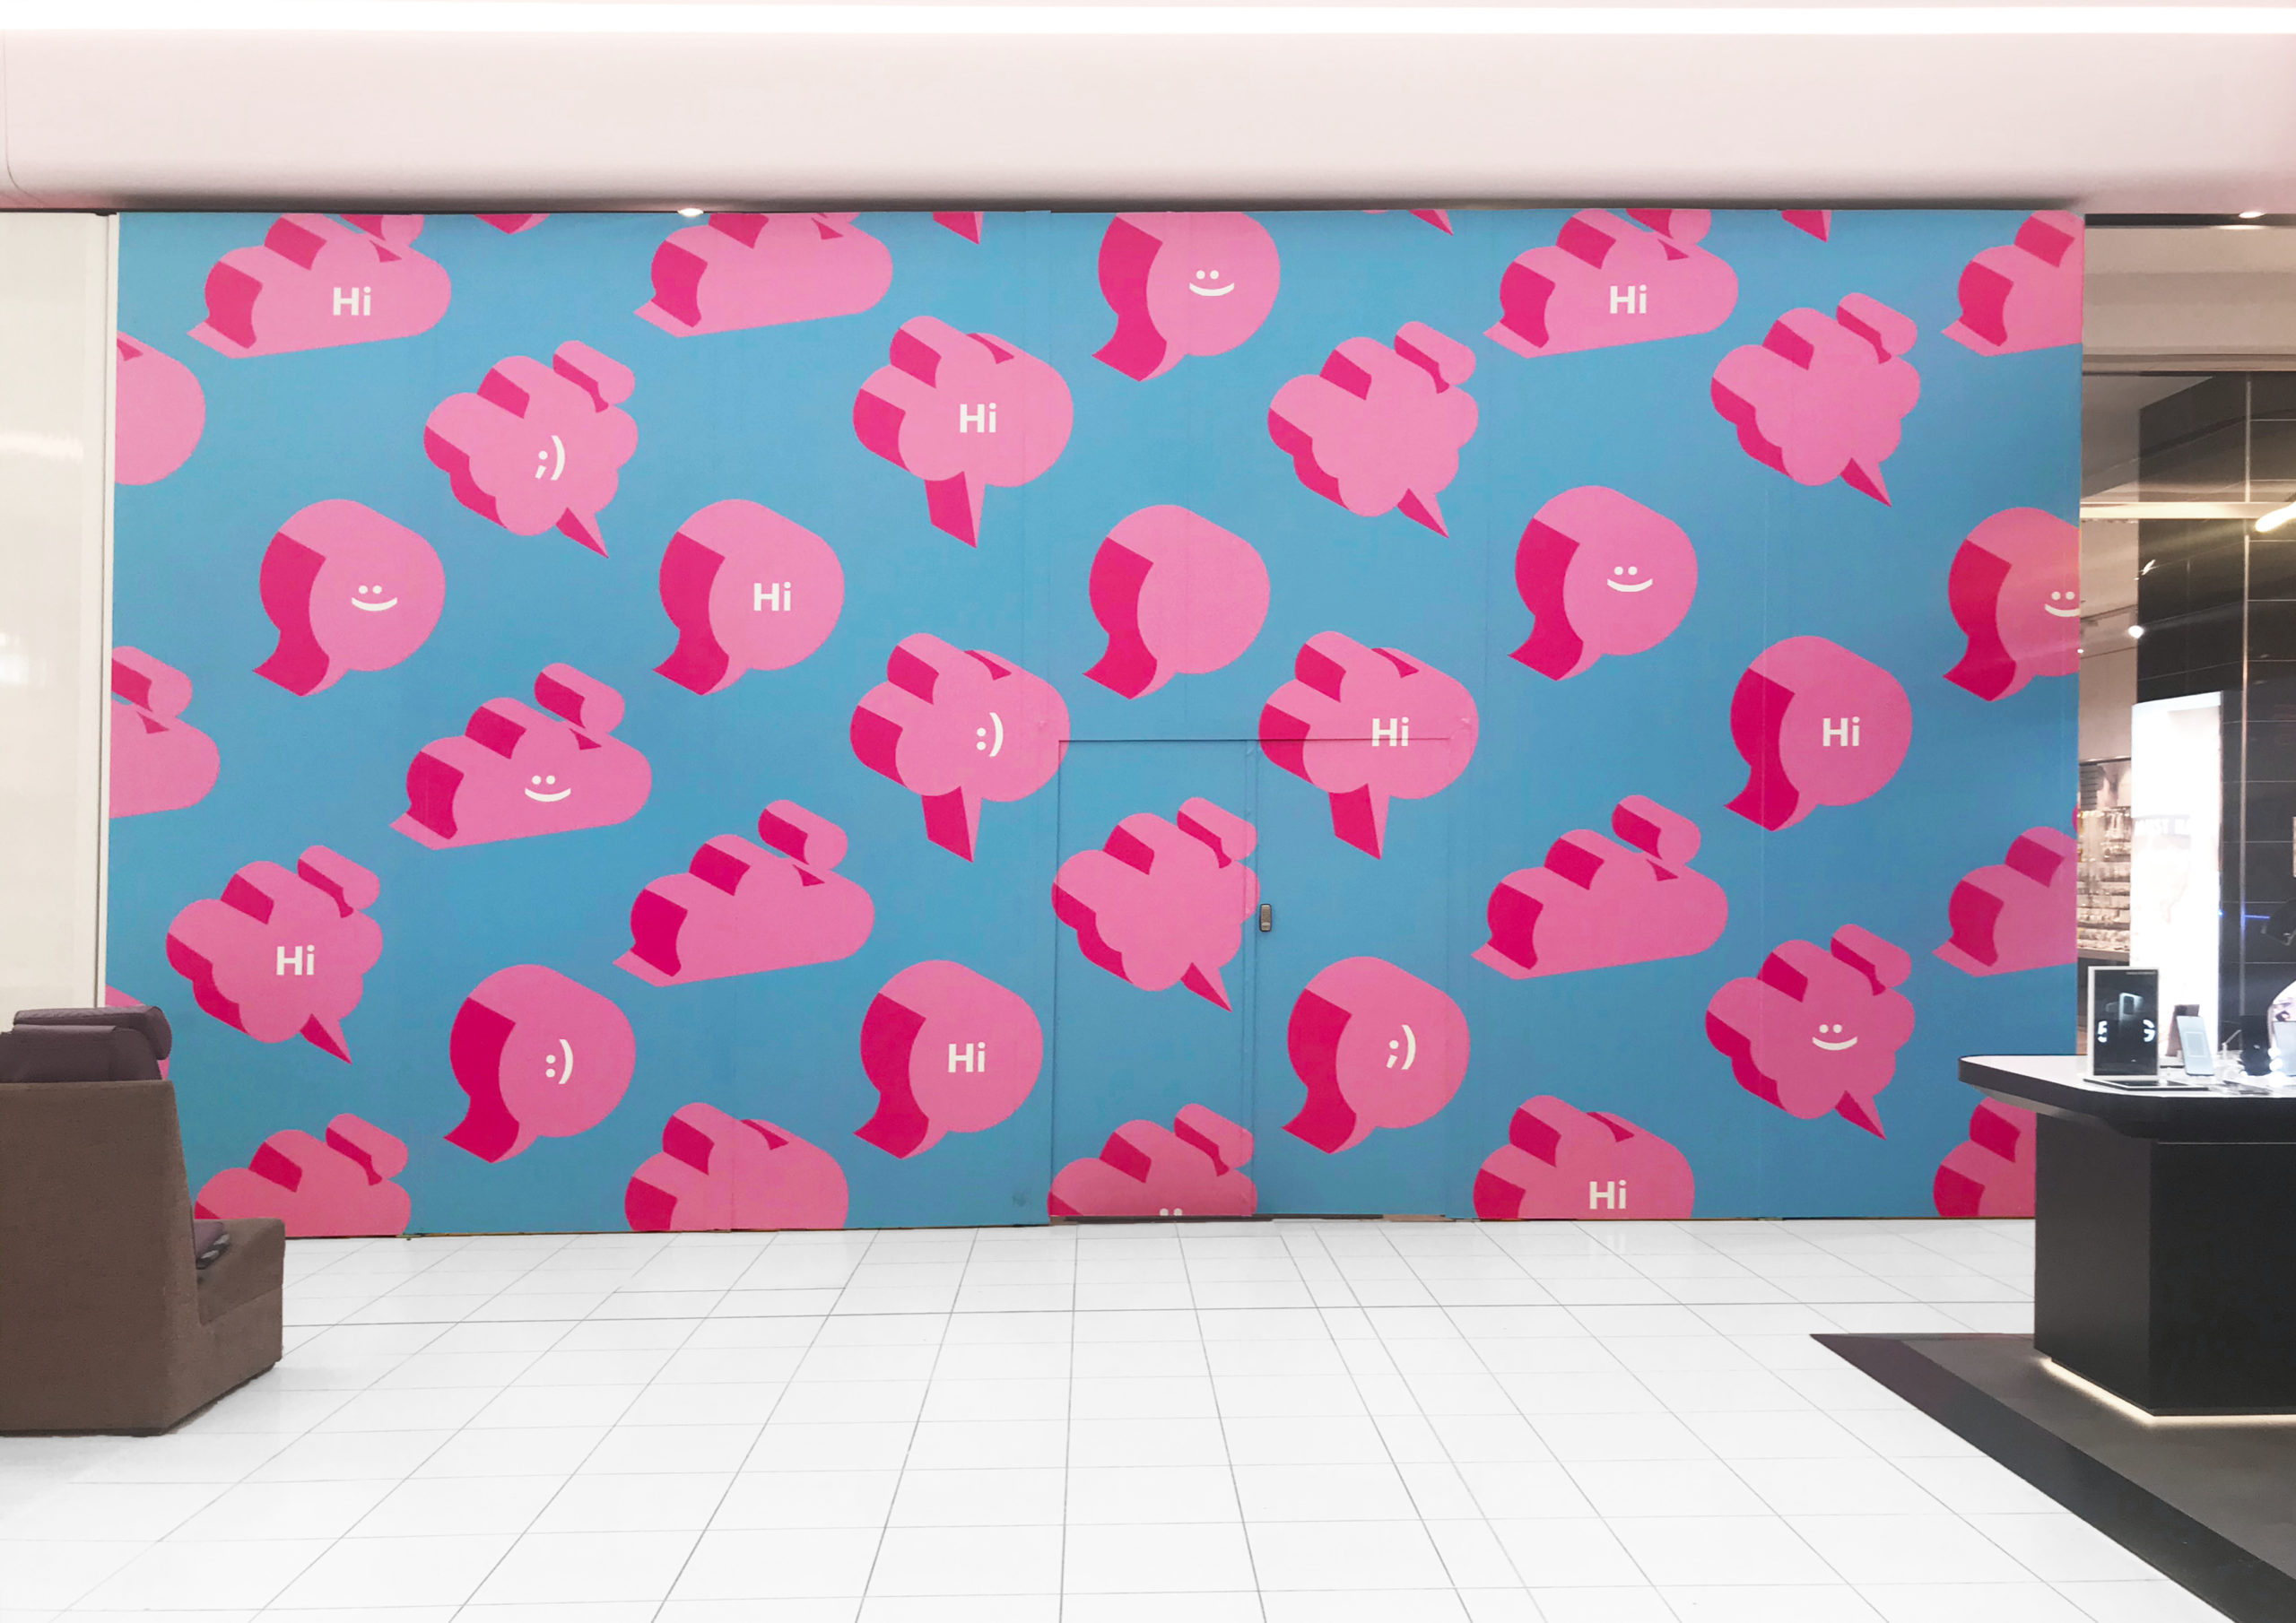 Large scale retail graphics at Sylvia Park Level 1 Launch featuring multiple 3D speech bubbles with smiling emojis